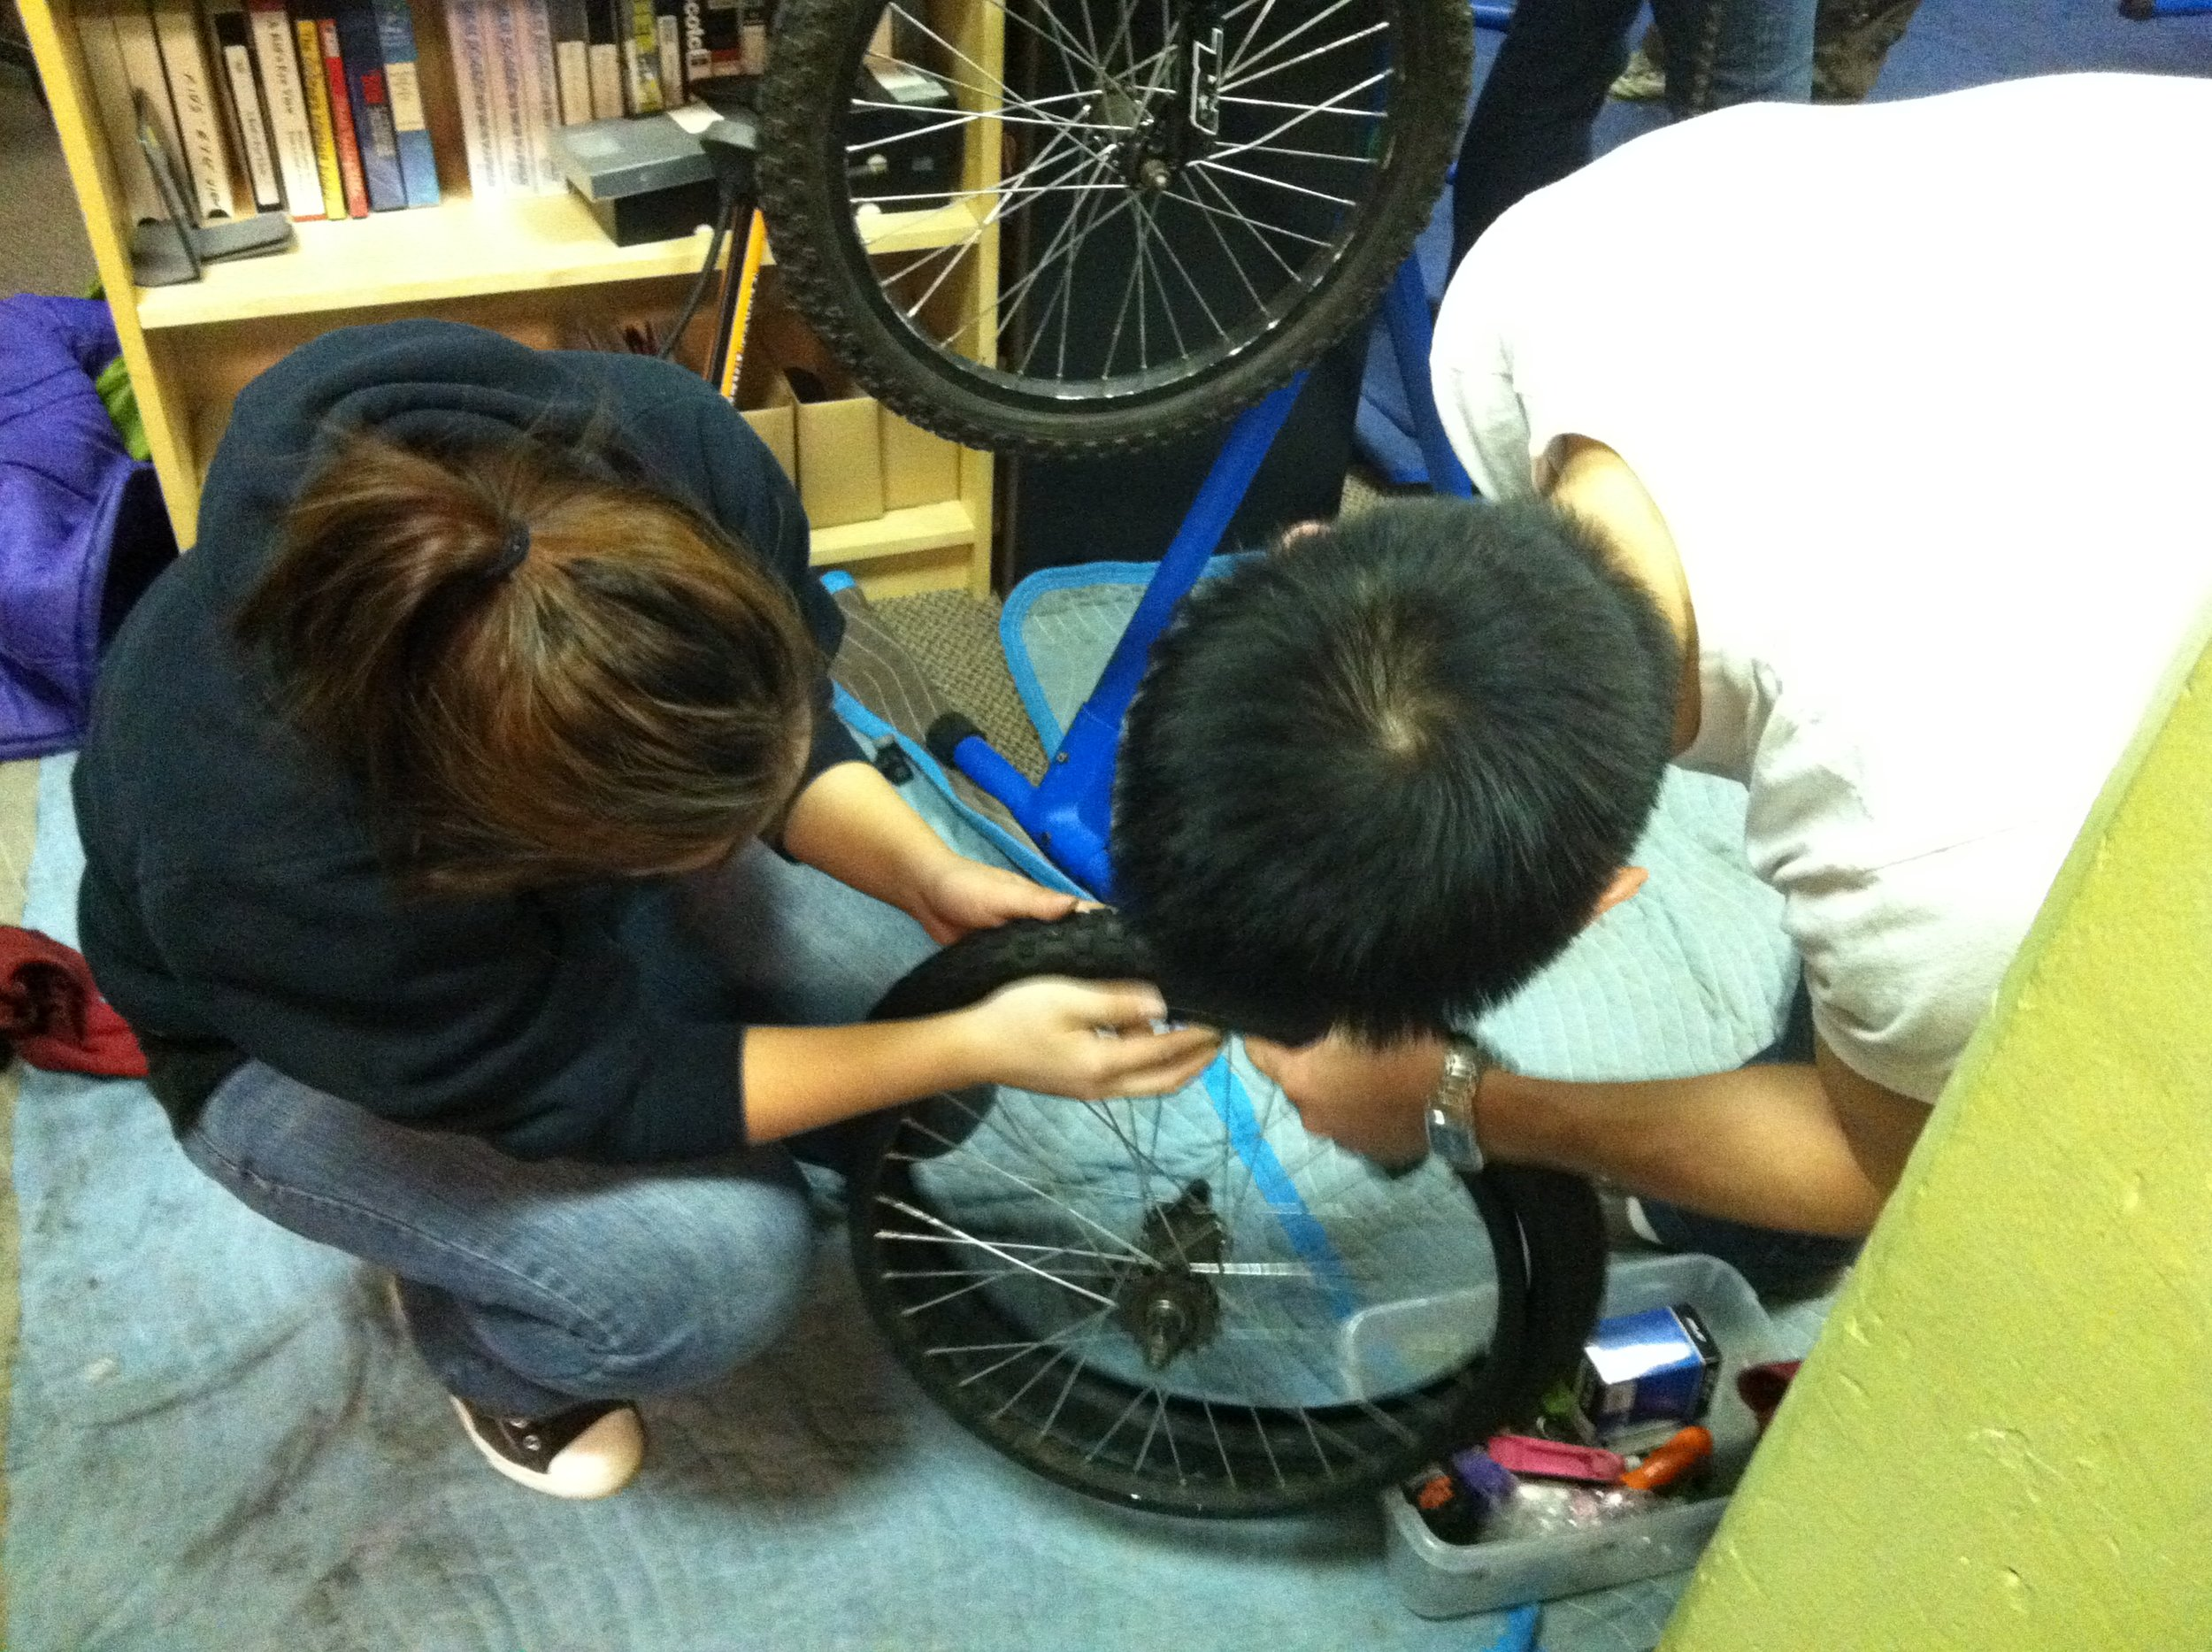 bicycle-maintenance-party_6530020059_o.jpg